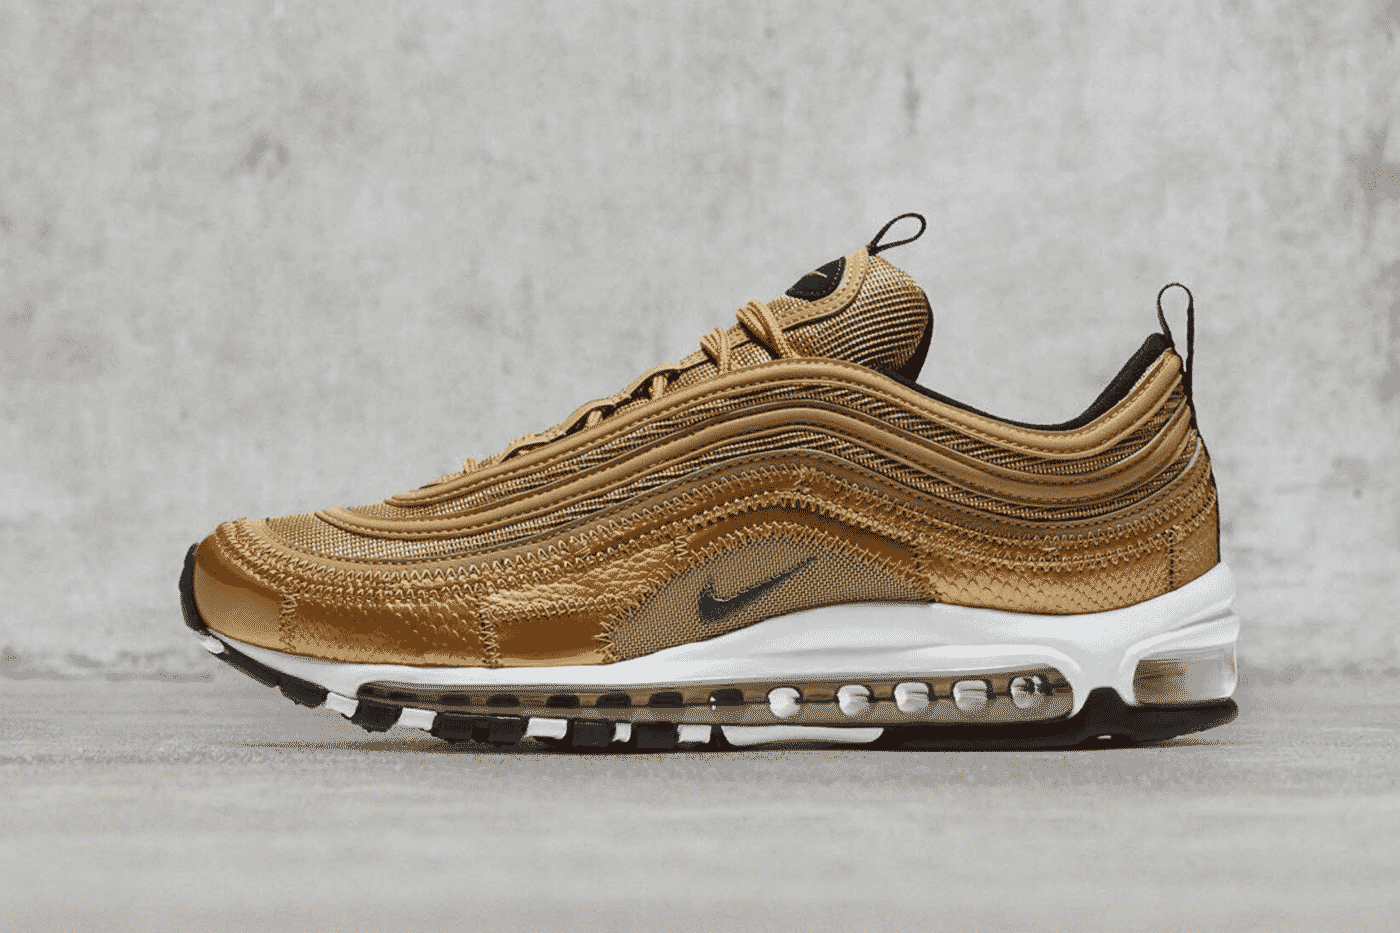 chaussures-nike-air-max-97-cr7-collection-3